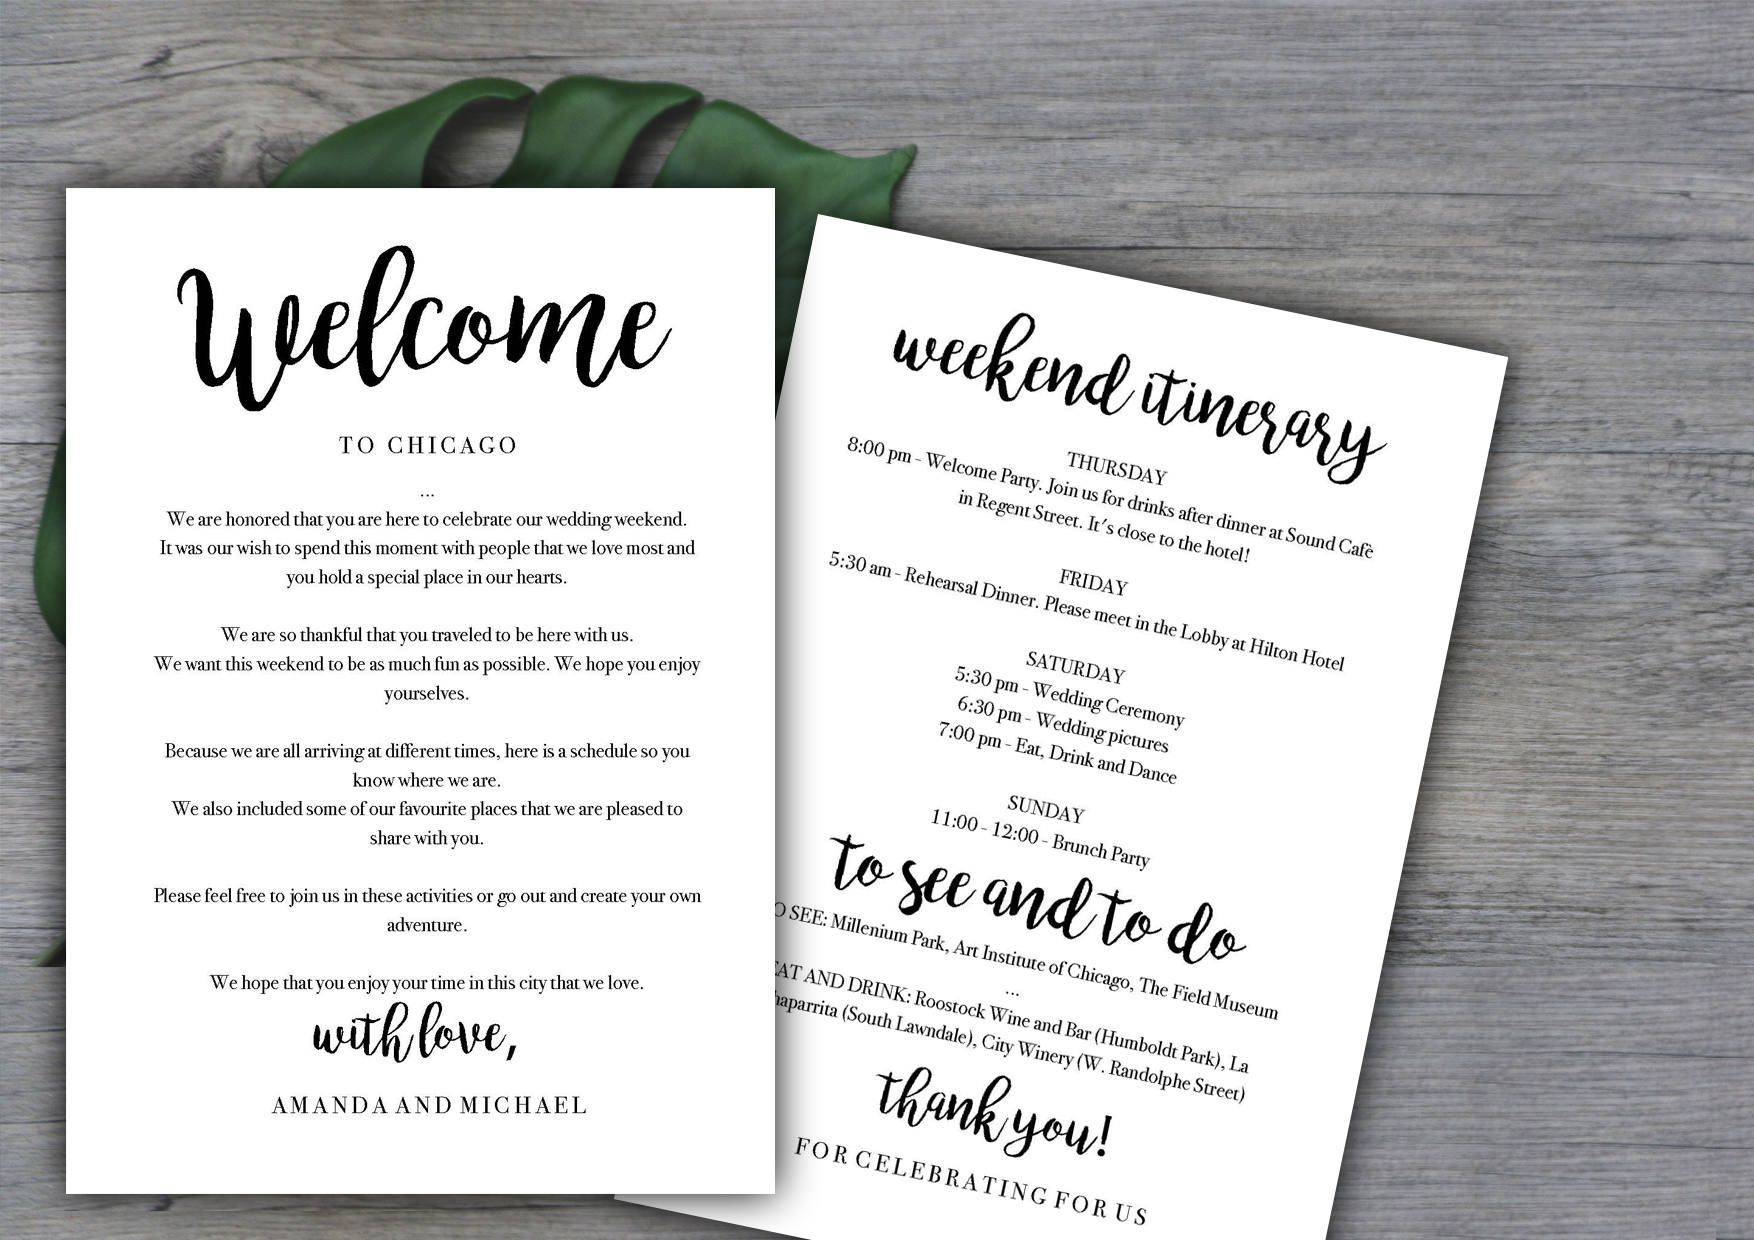 005 Unusual Destination Wedding Welcome Letter Template Highest Quality  And ItineraryFull